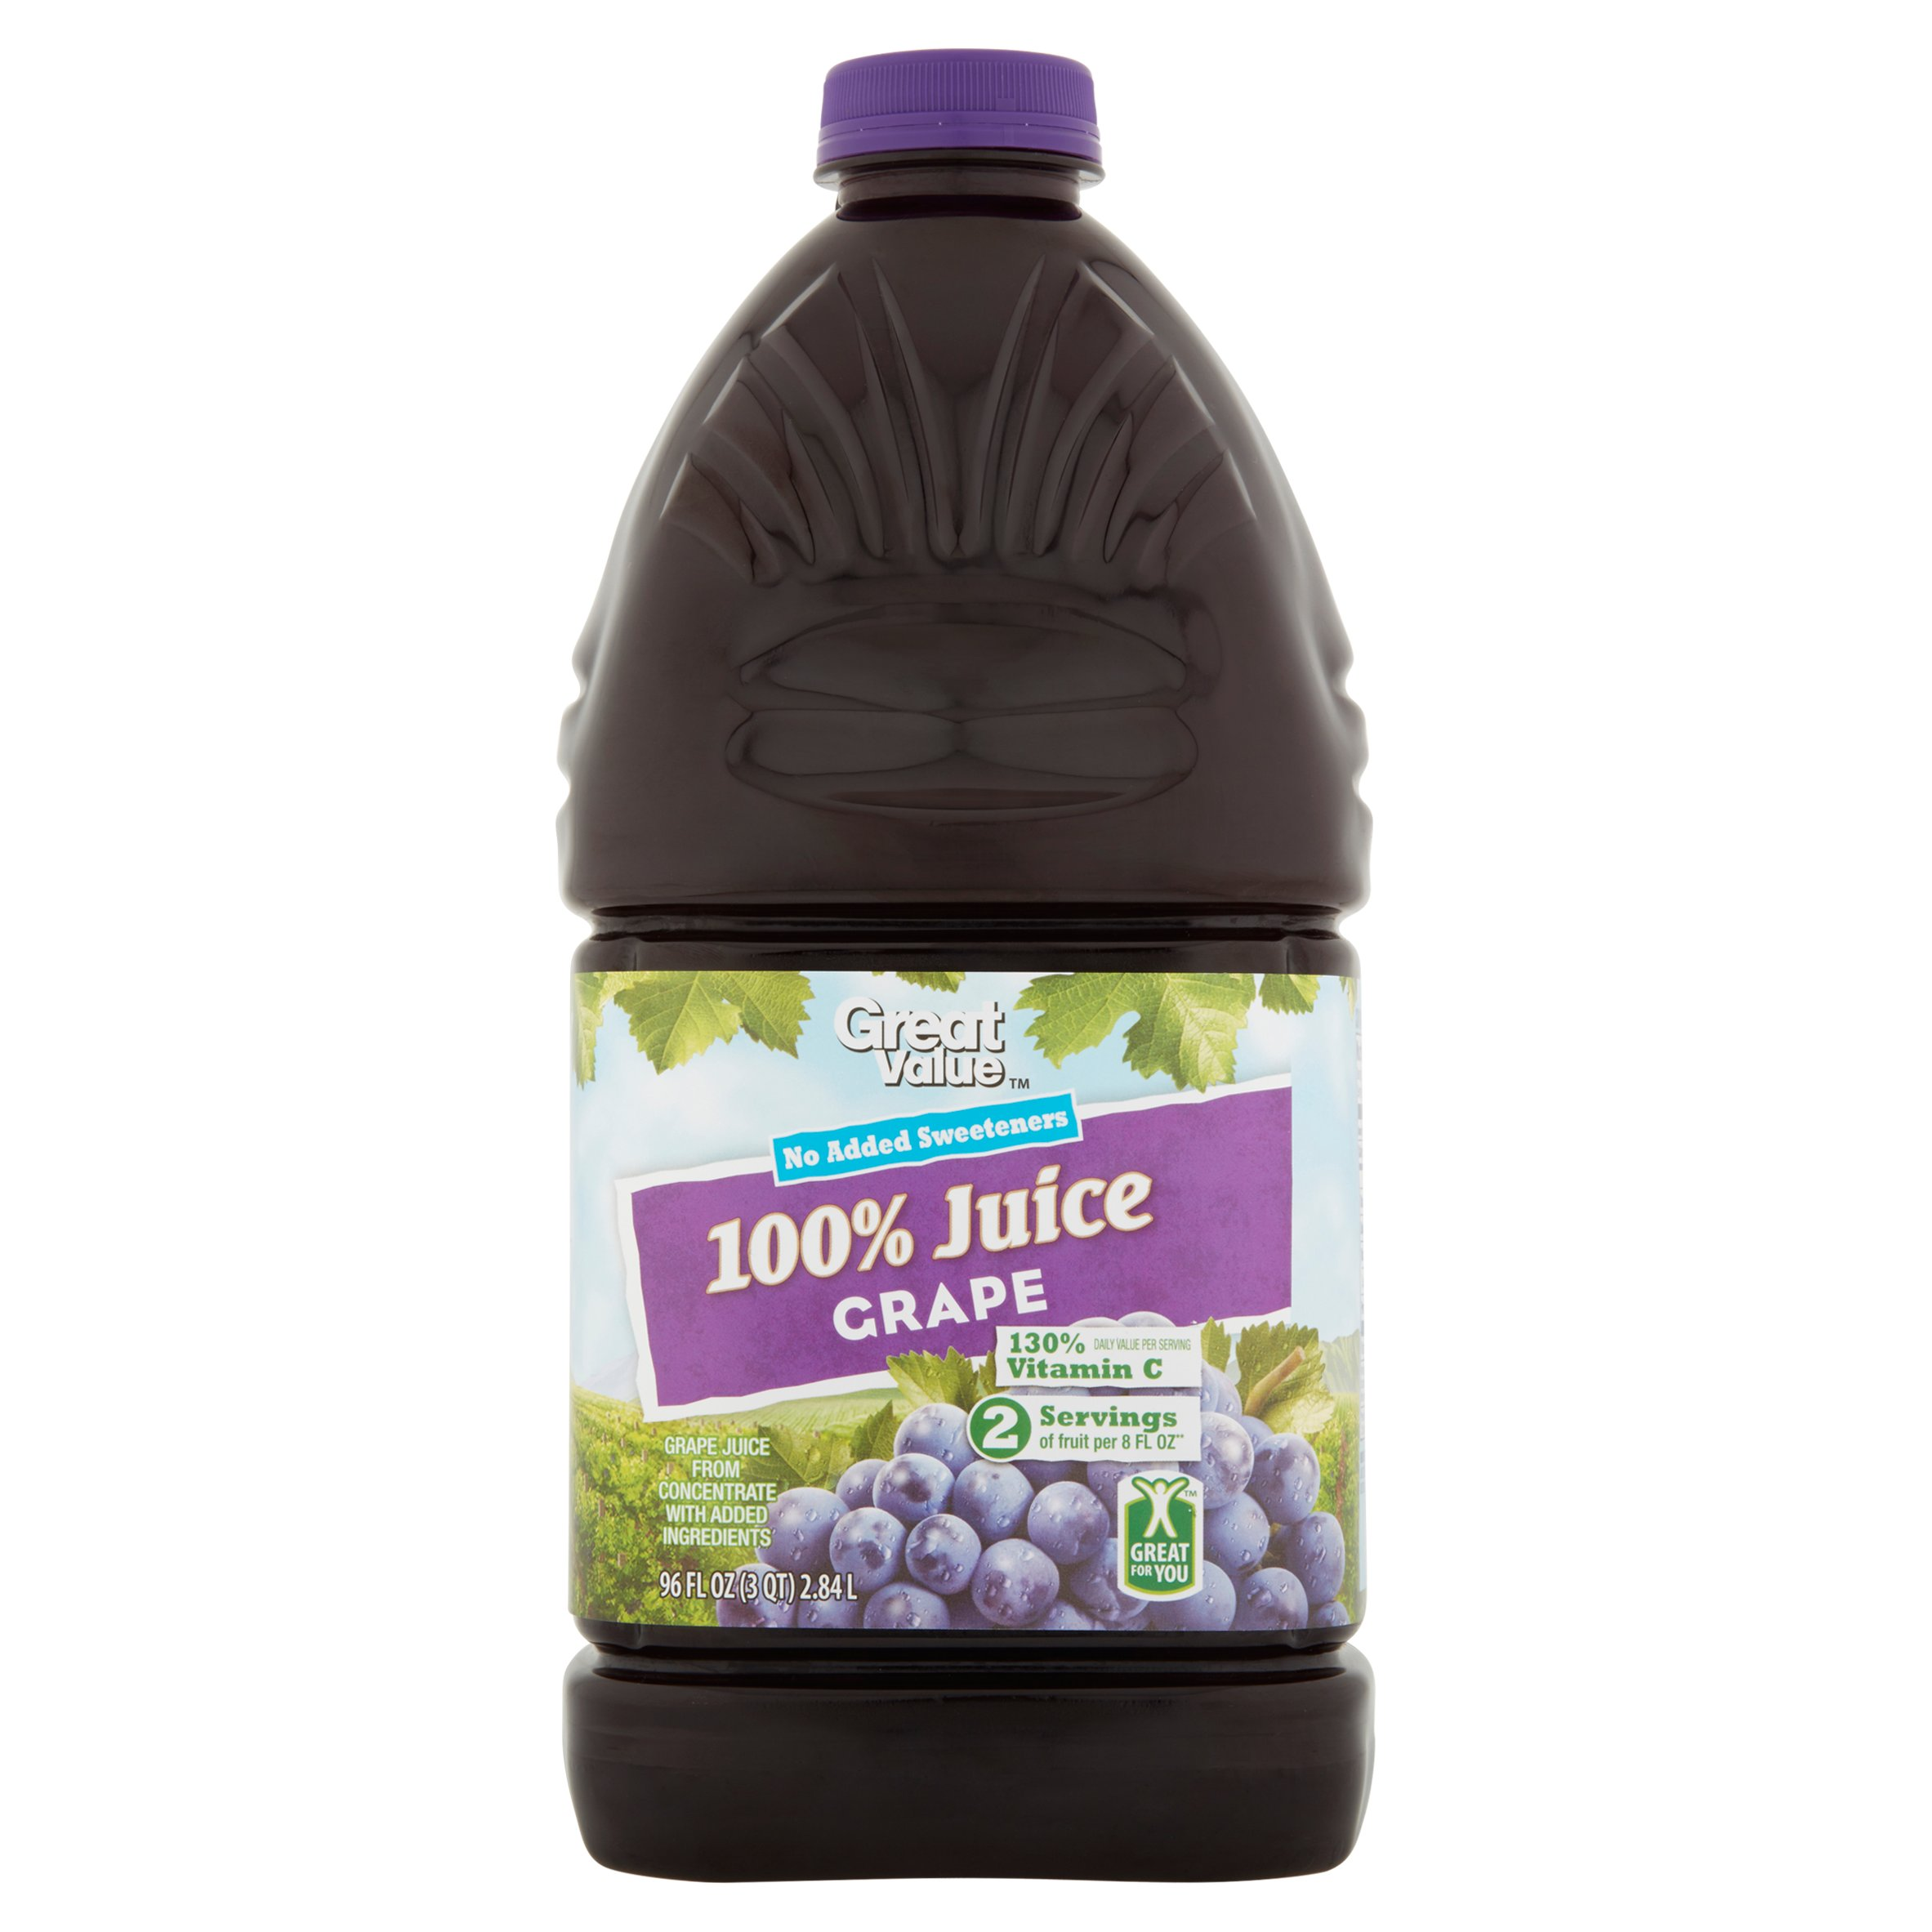 Great Value 100% Grape Juice, 96 fl oz by Wal-Mart Stores, Inc.